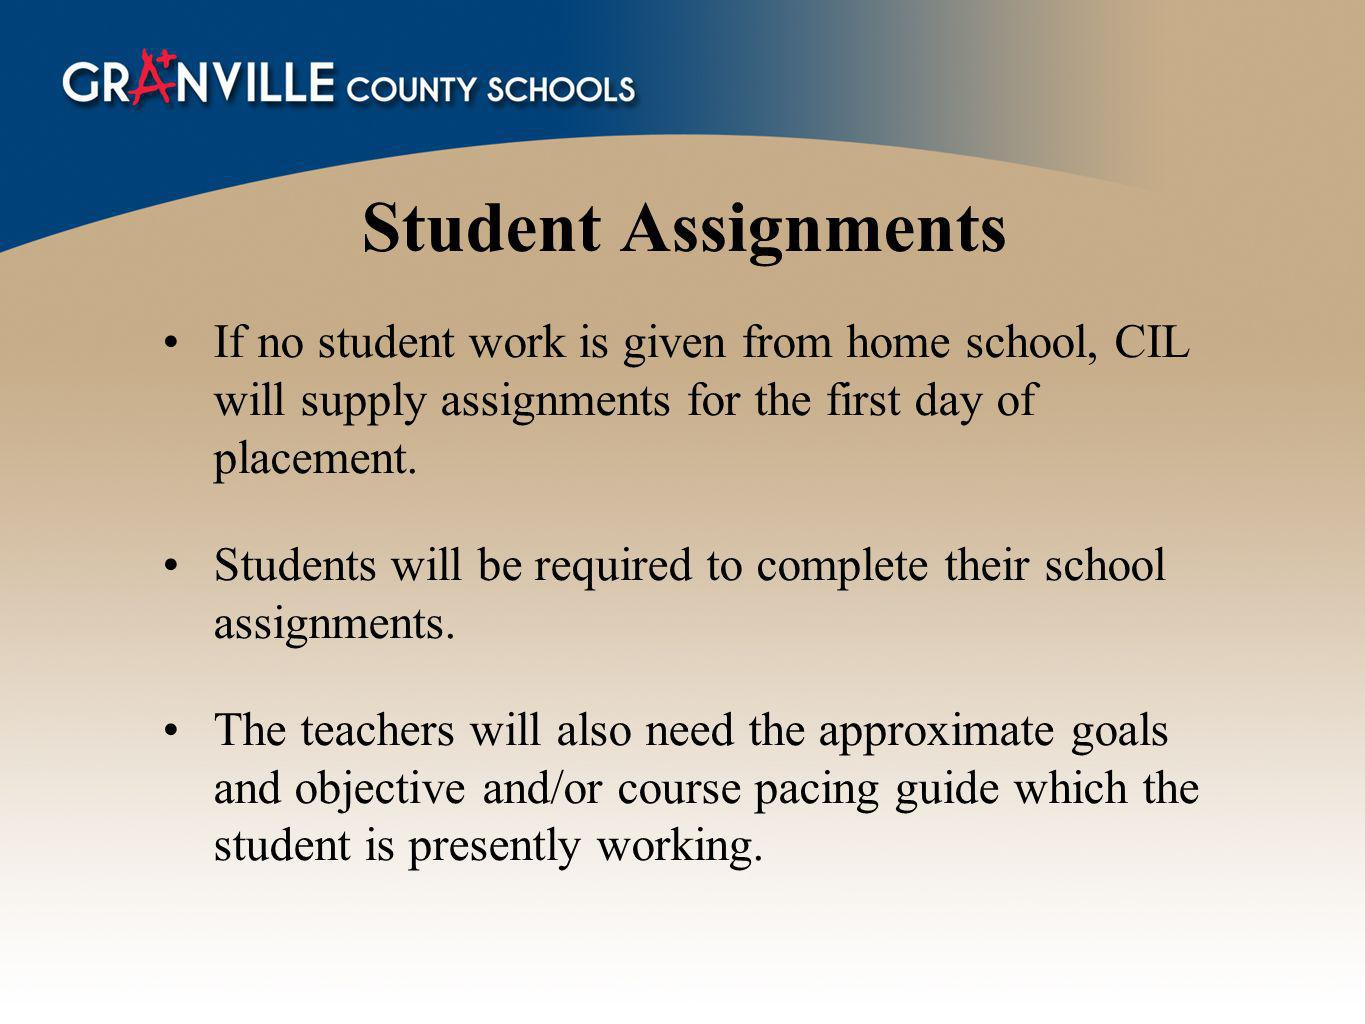 Student Assignments If no student work is given from home school, CIL will supply assignments for the first day of placement.